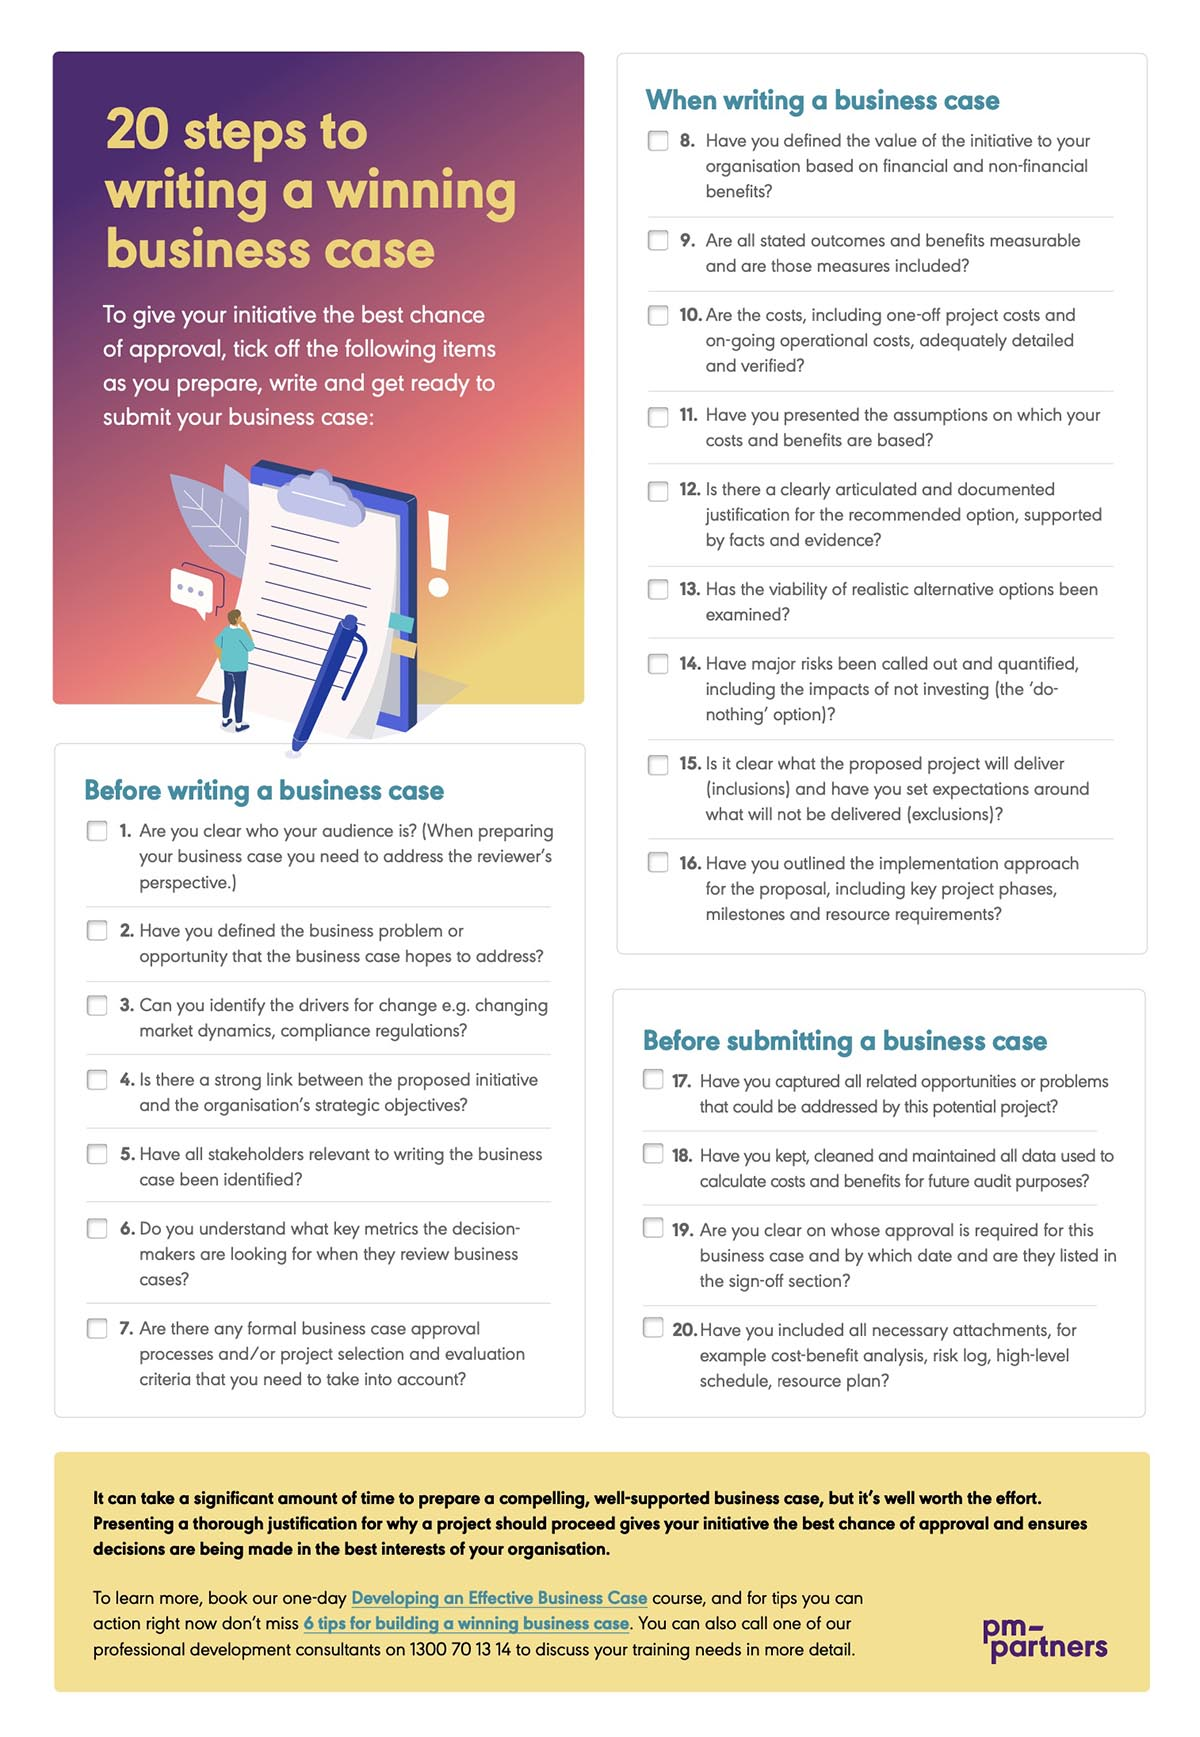 20 steps to writing a winning business case